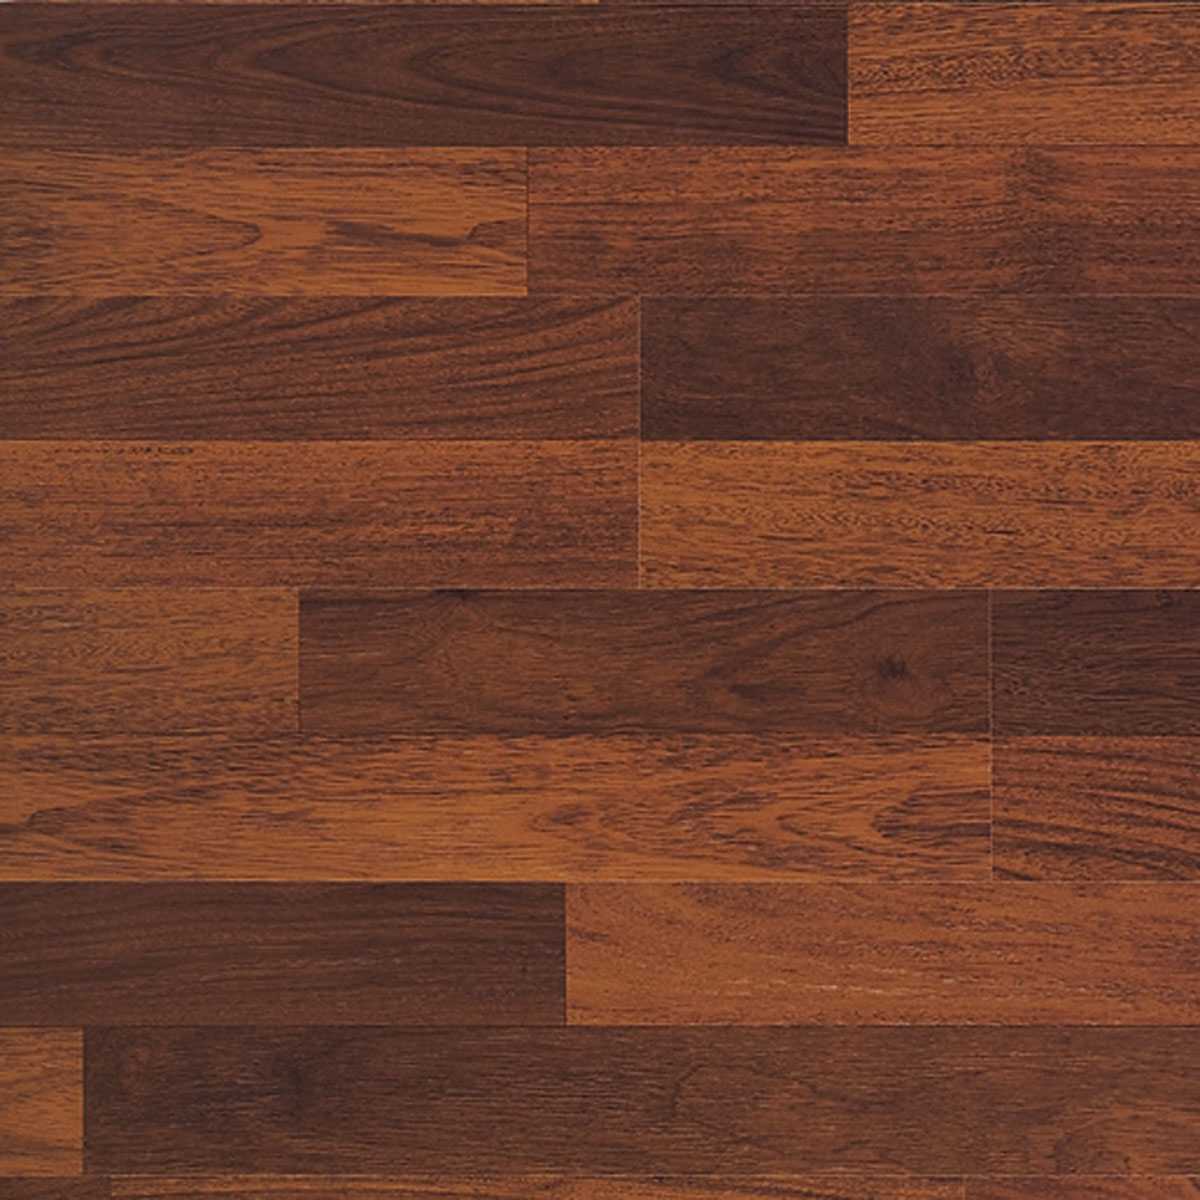 Laminate flooring hardwood and laminate flooring for Hardwood flooring sale